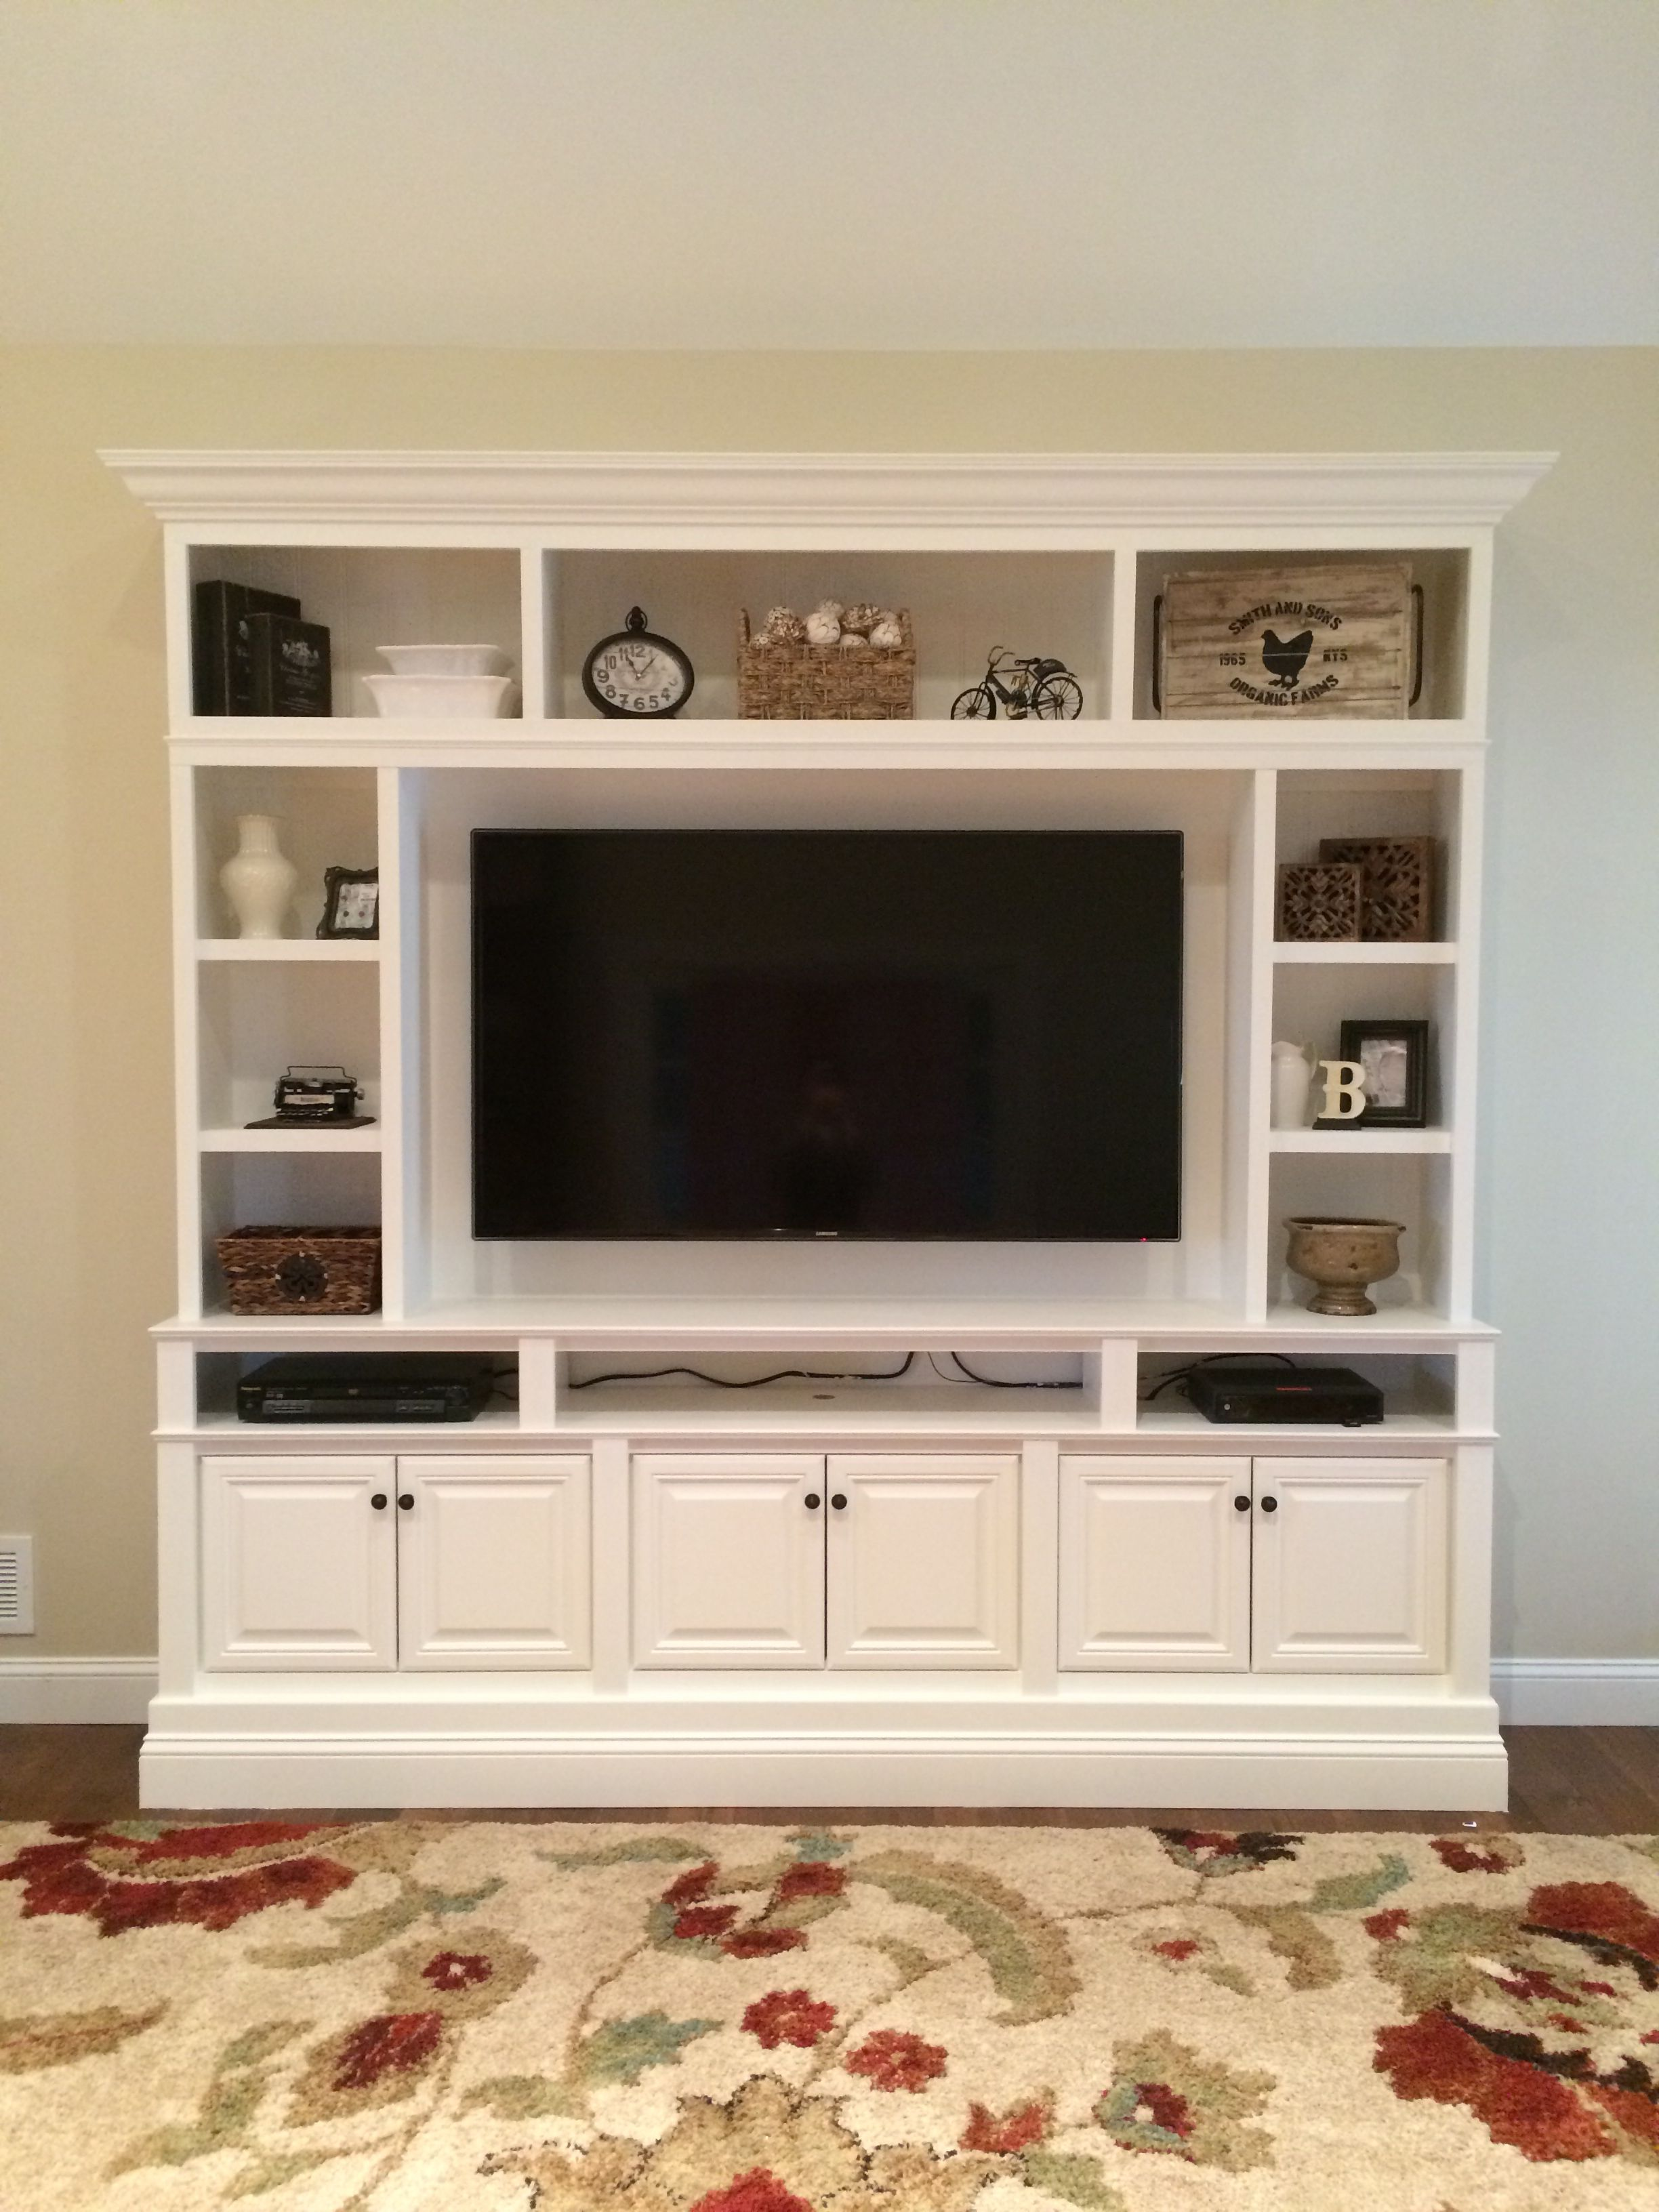 Latest Tv Unit Design: 17 DIY Entertainment Center Ideas And Designs For Your New